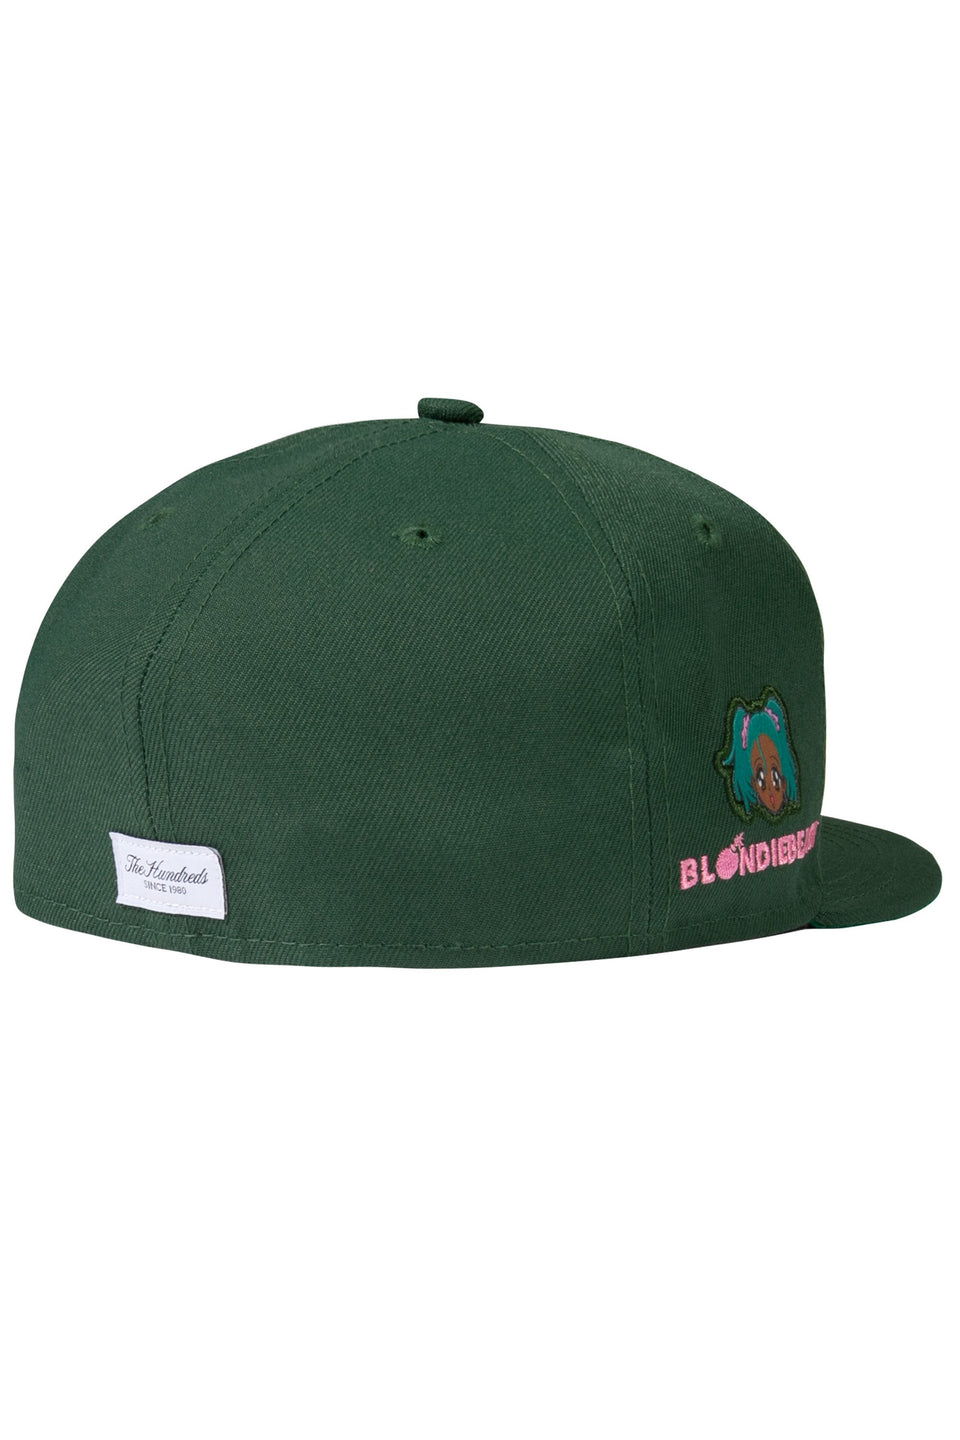 Blondie Beach New Era